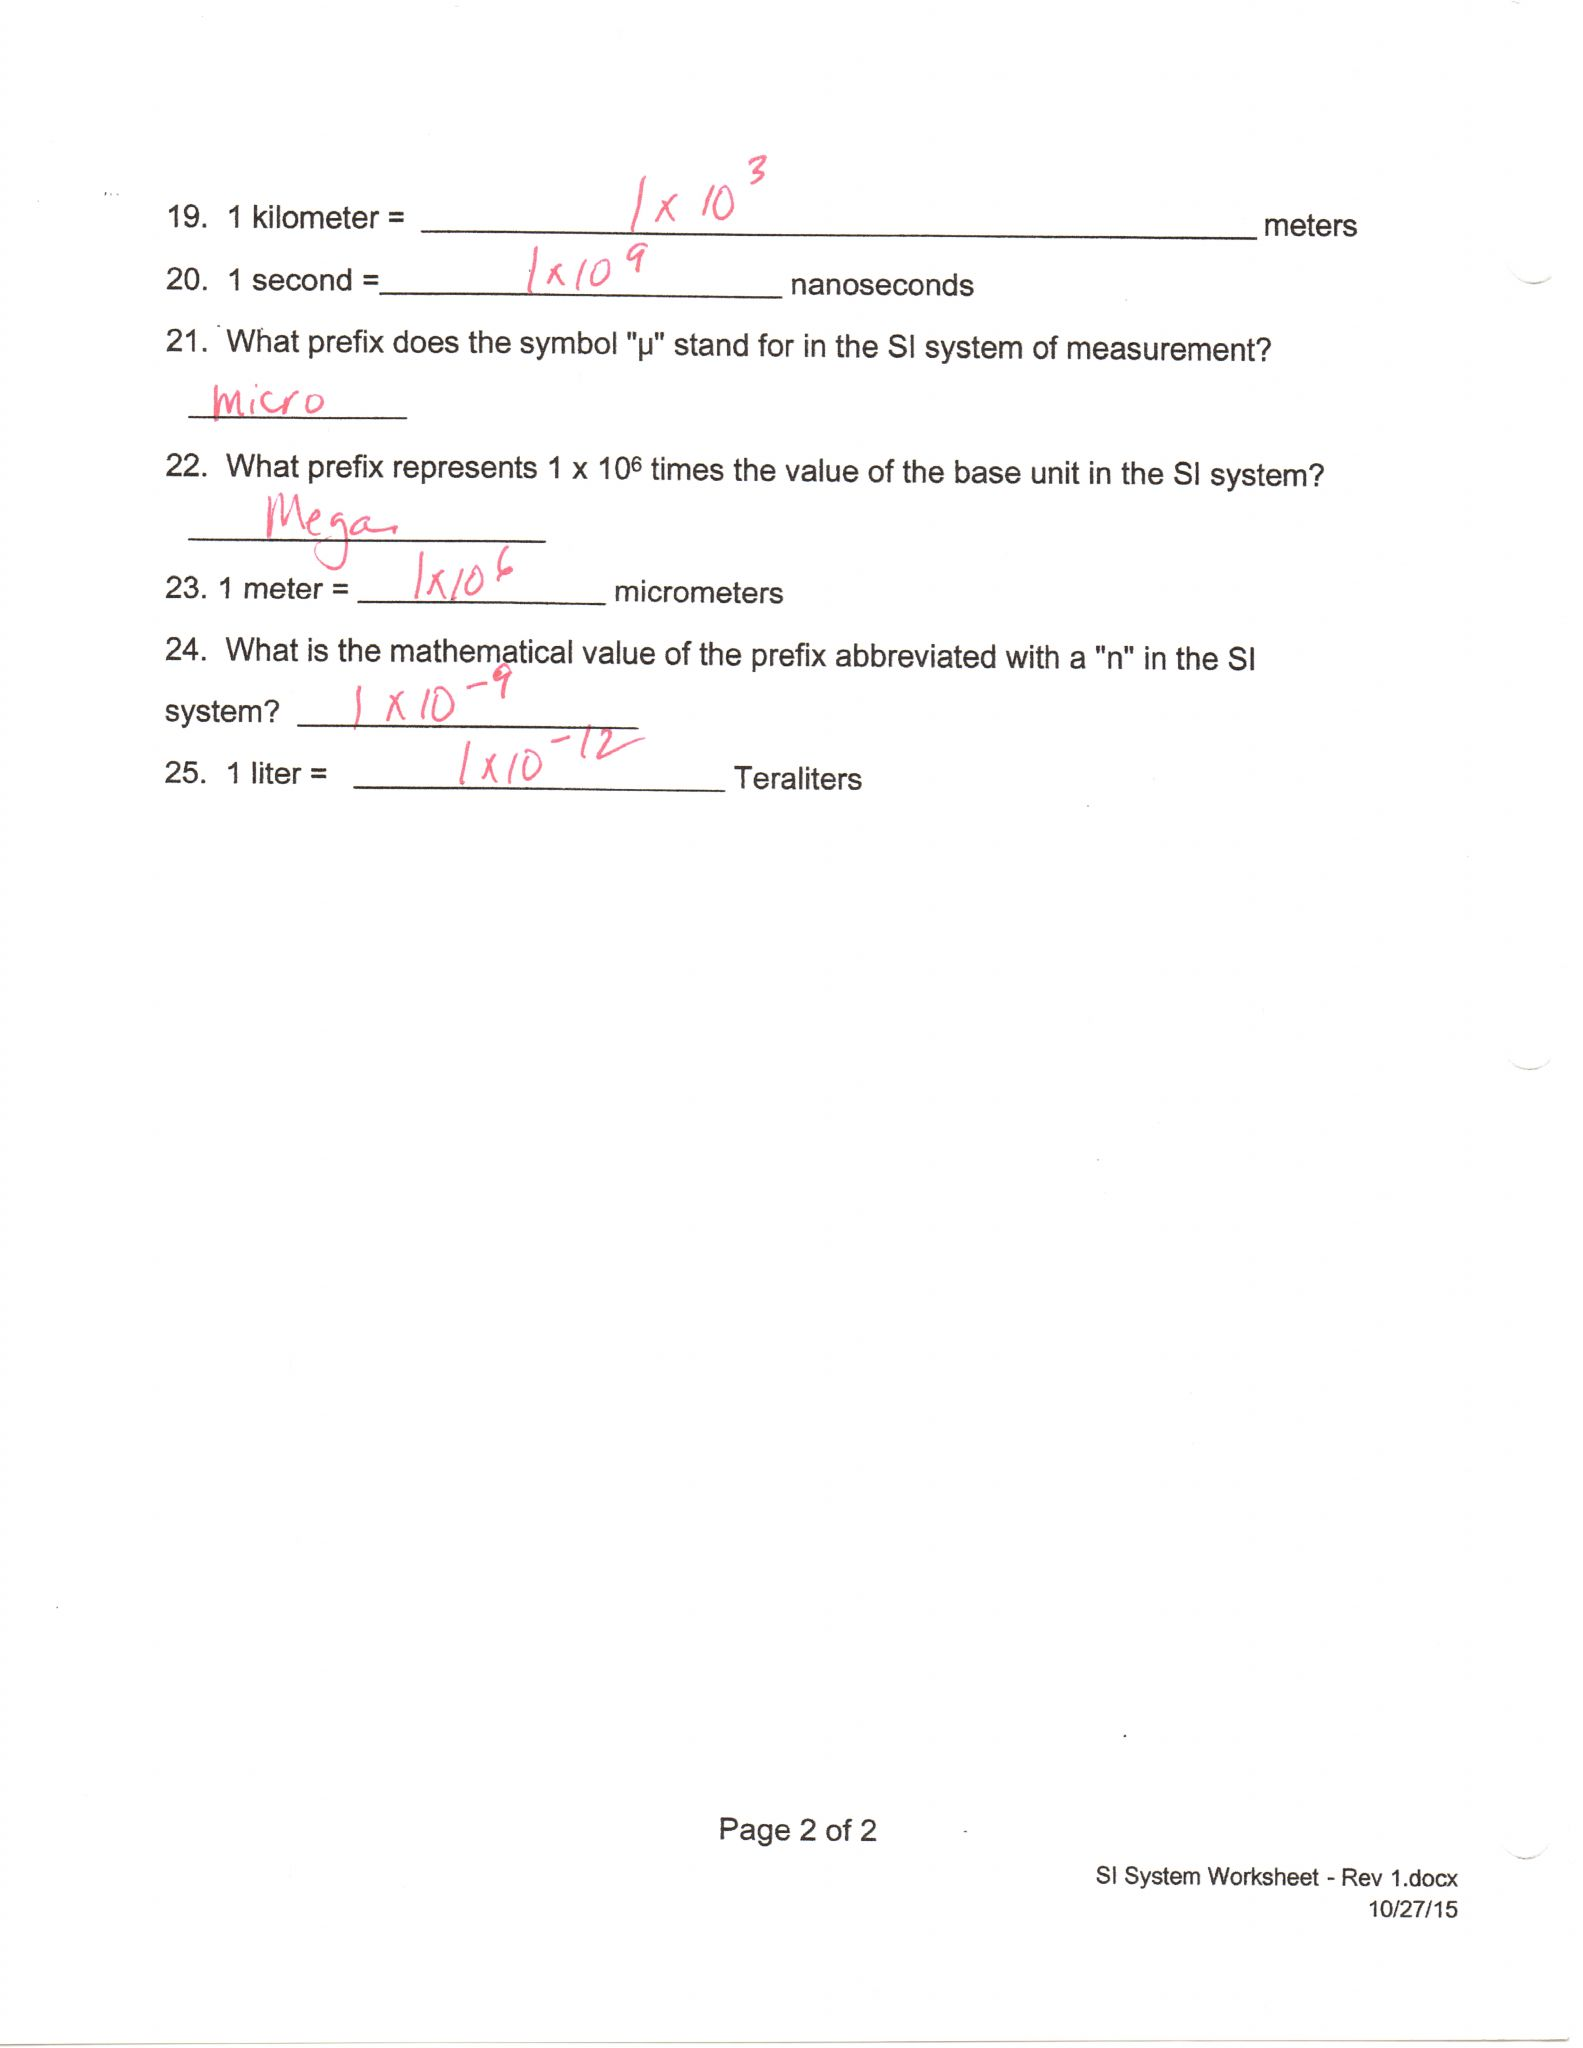 33 Teaching Transparency Worksheet Answers Chapter 6